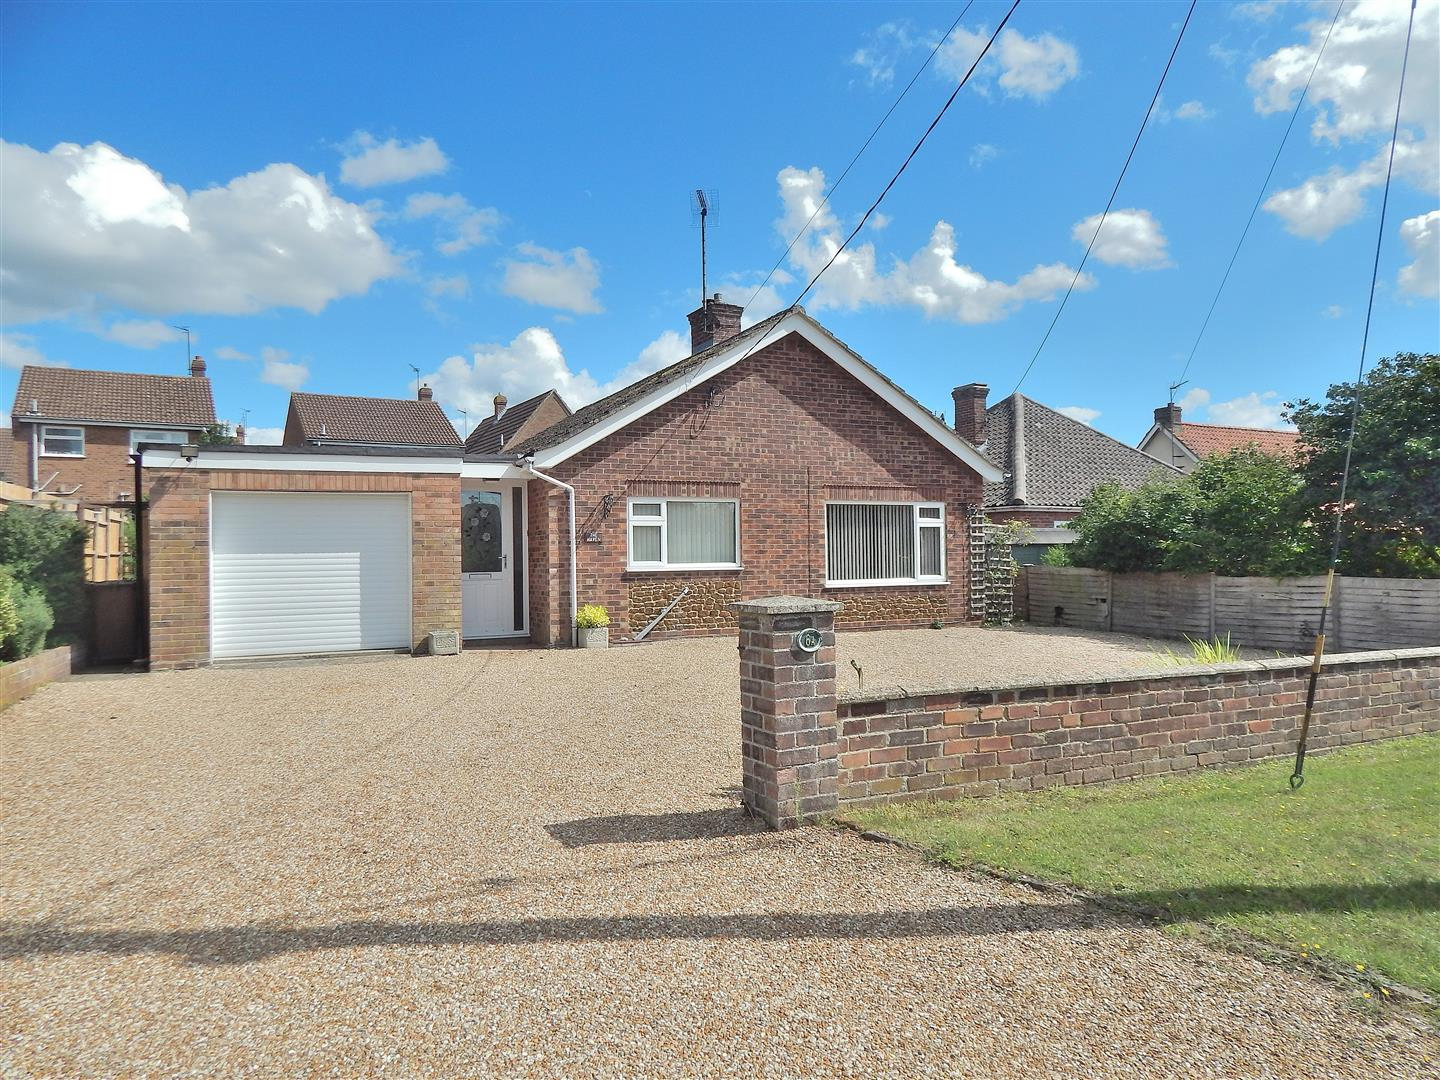 3 bed detached bungalow for sale in King's Lynn, PE31 6HT  - Property Image 1